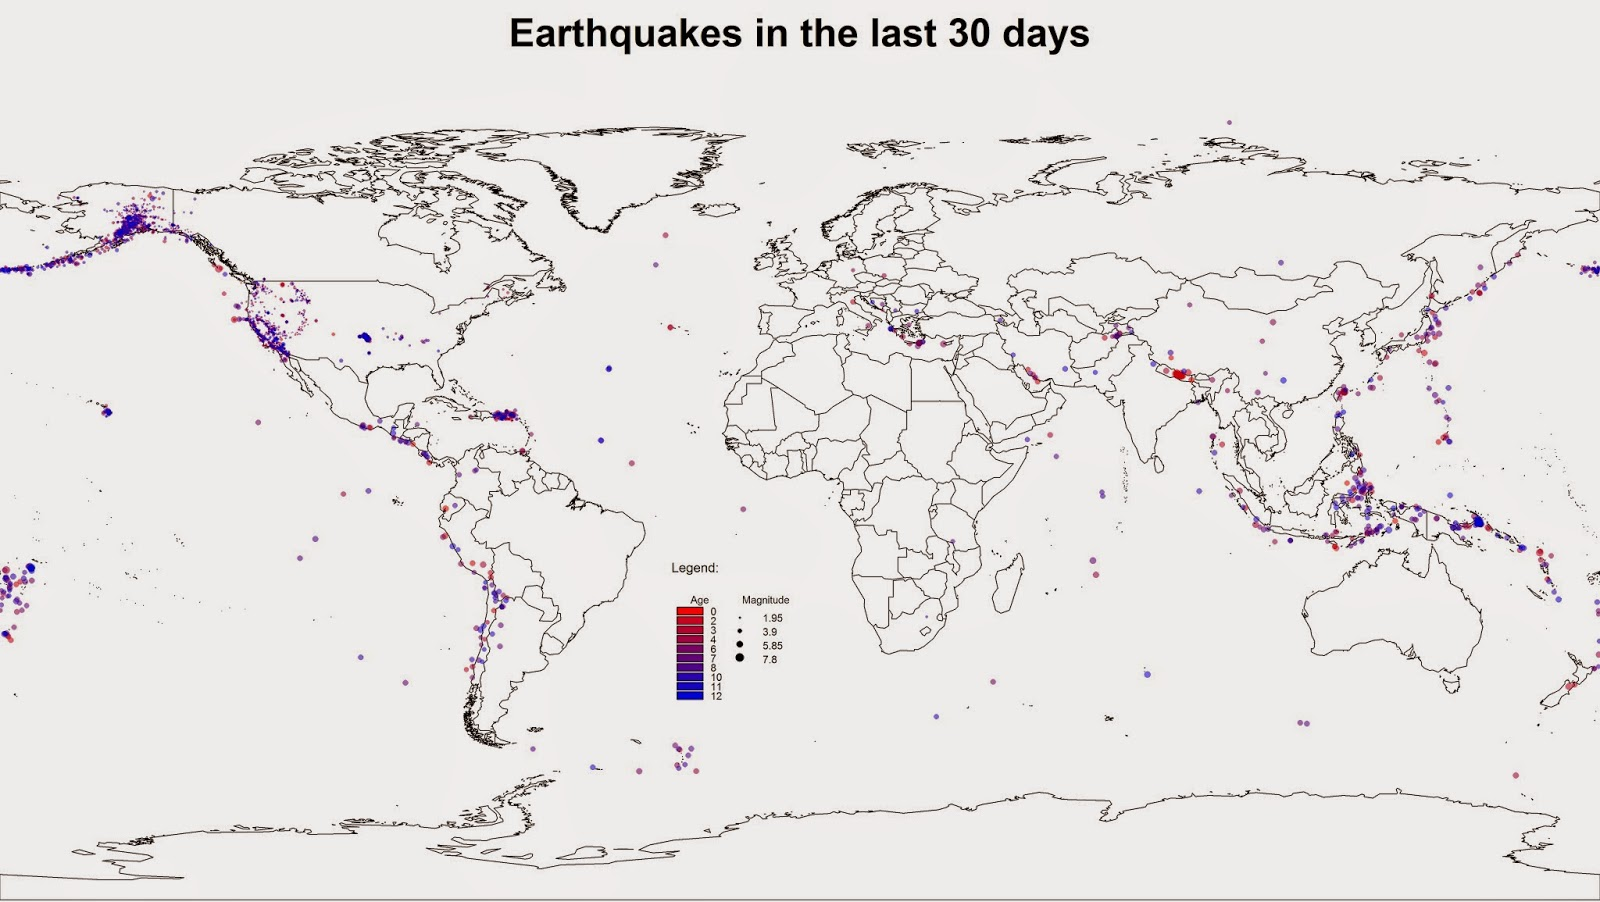 Downloading and Visualizing Seismic Events from USGS | R-bloggers